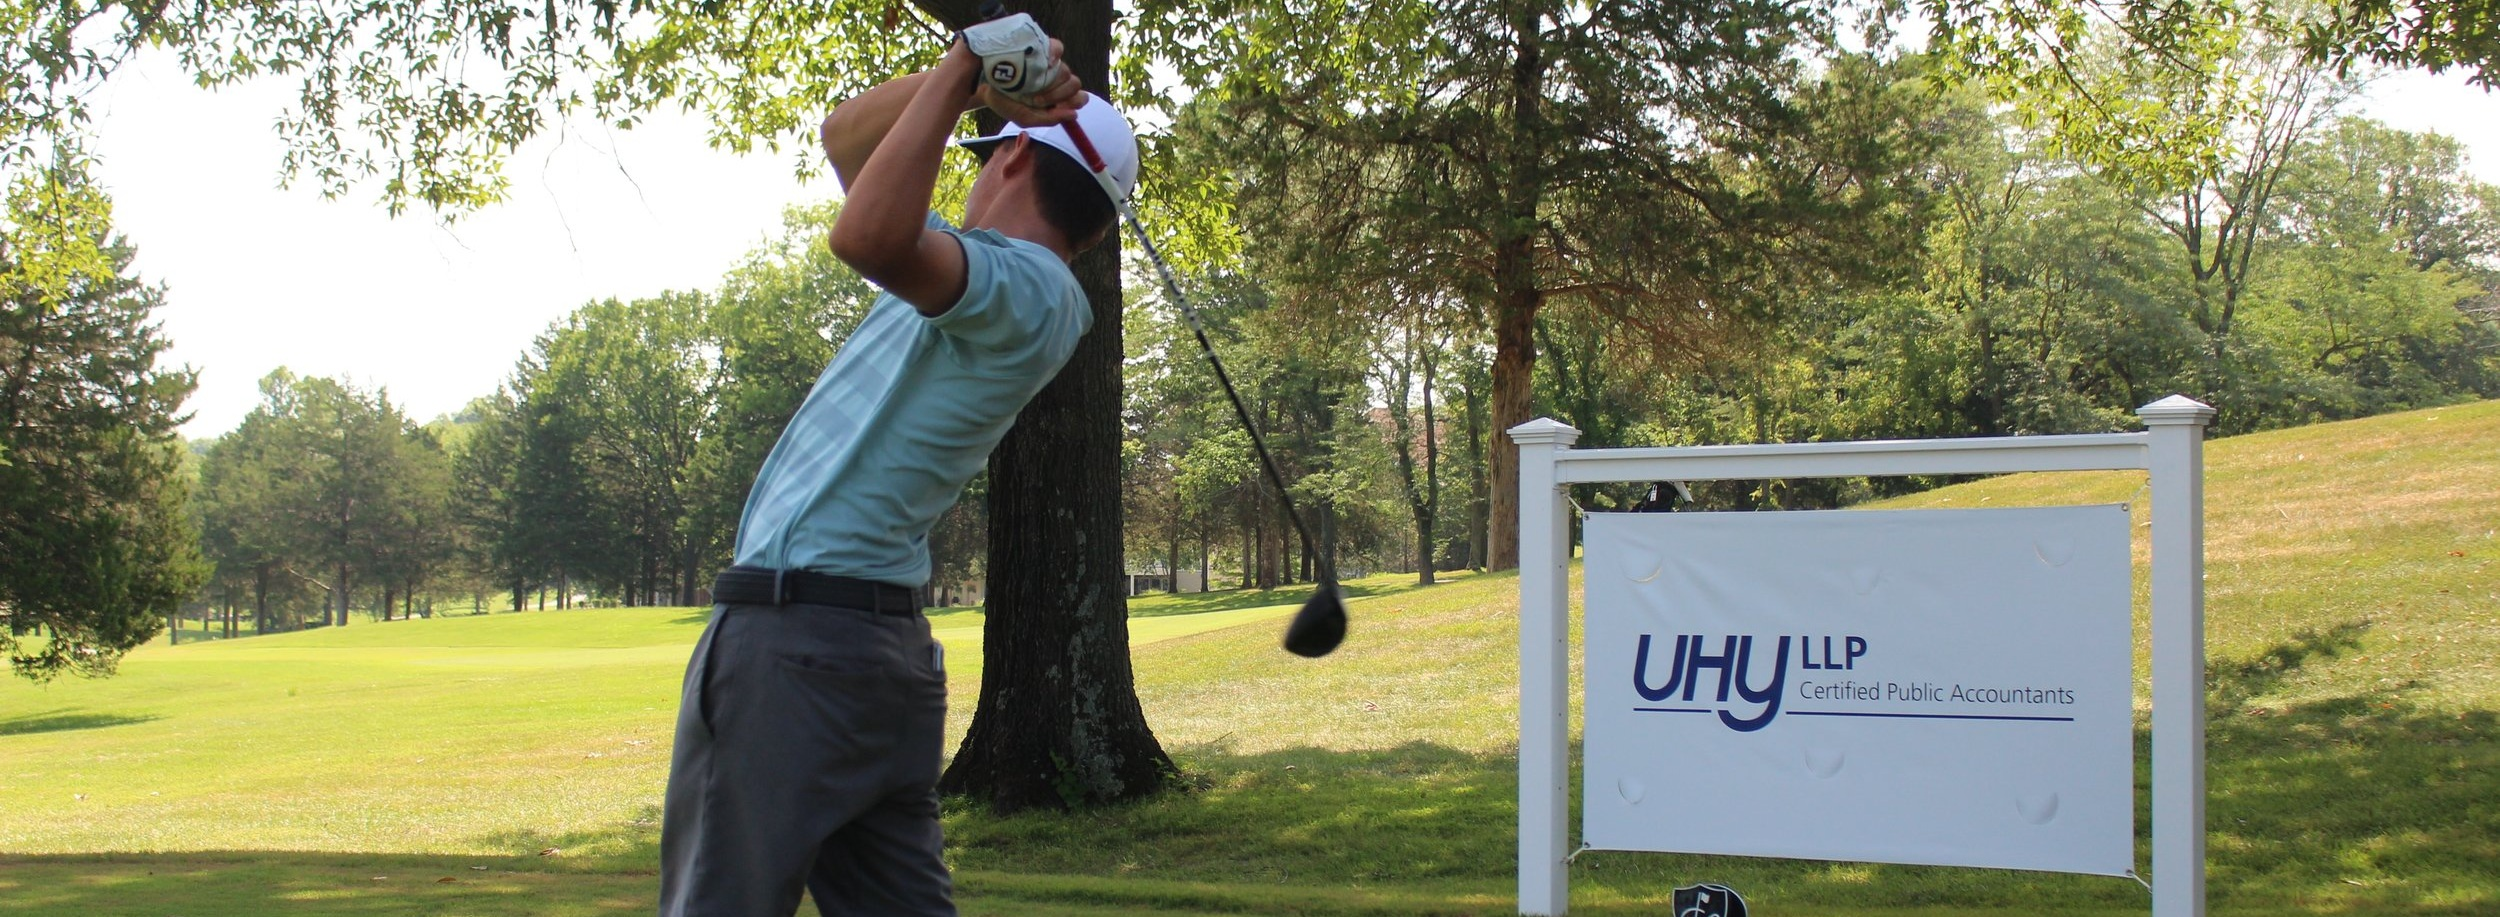 UHY+LLP+CPA+signage+junior+teeing+off.jpg